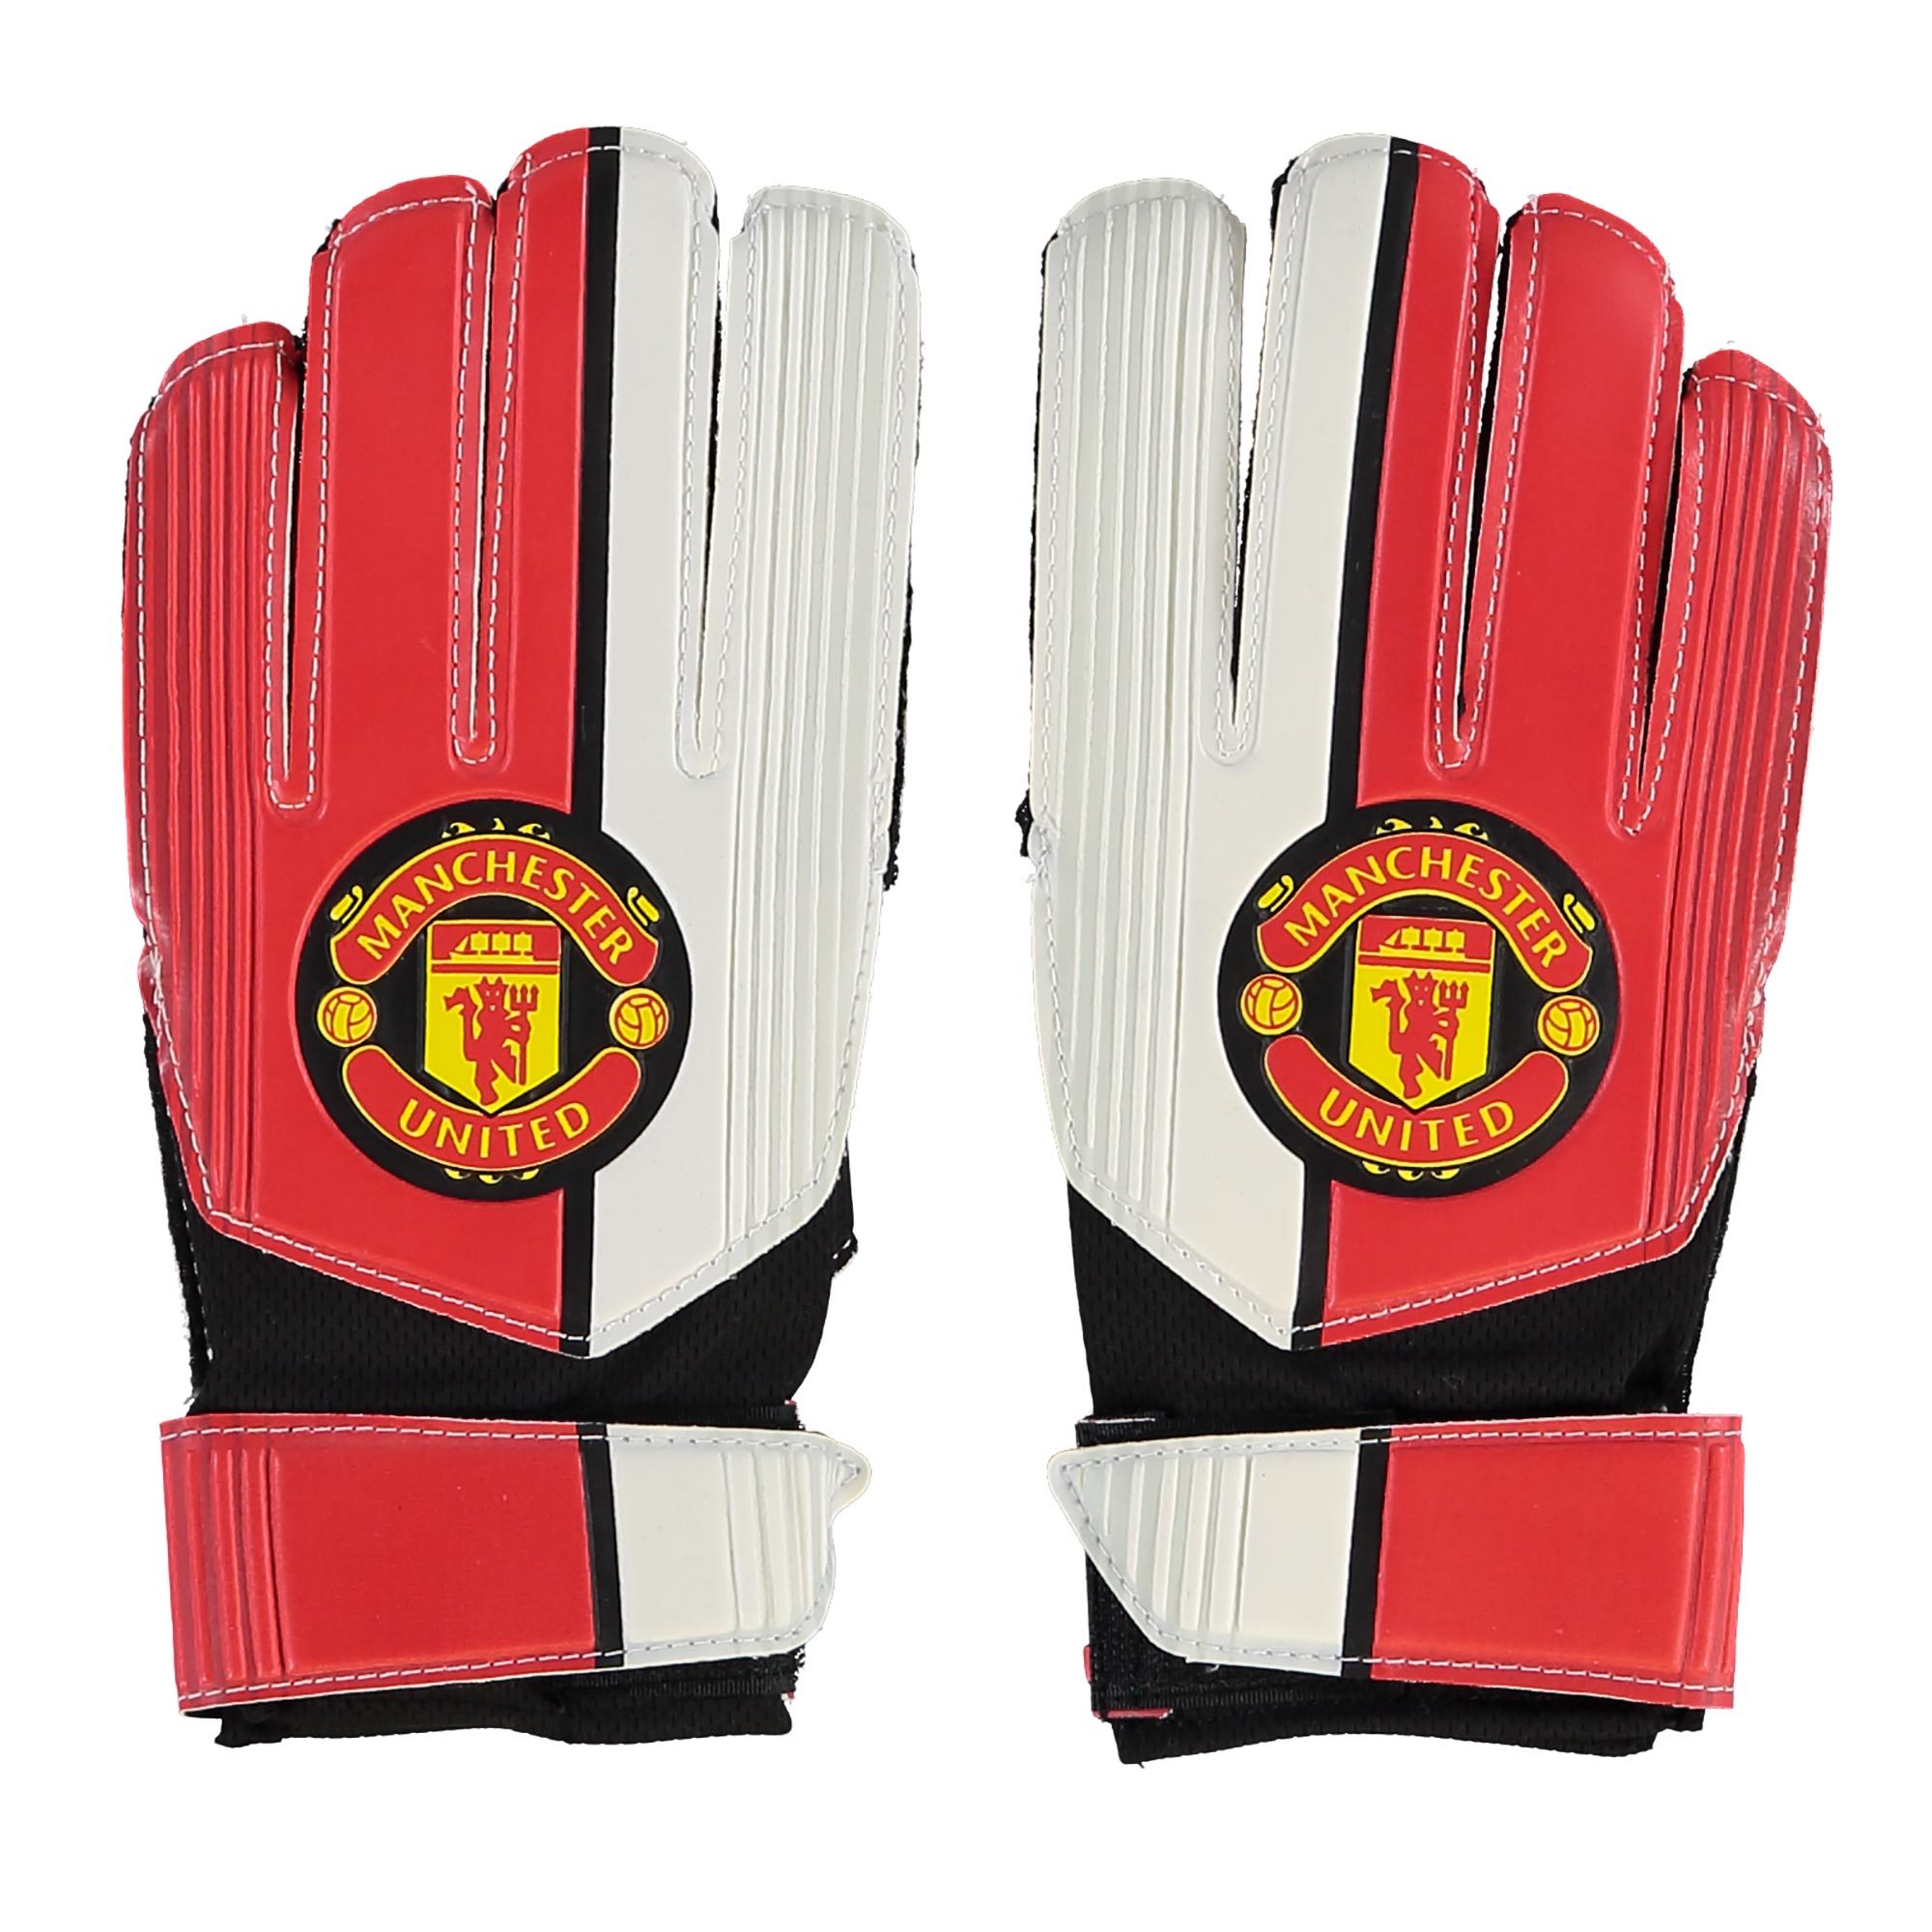 Manchester United Crest Gloves - Youths